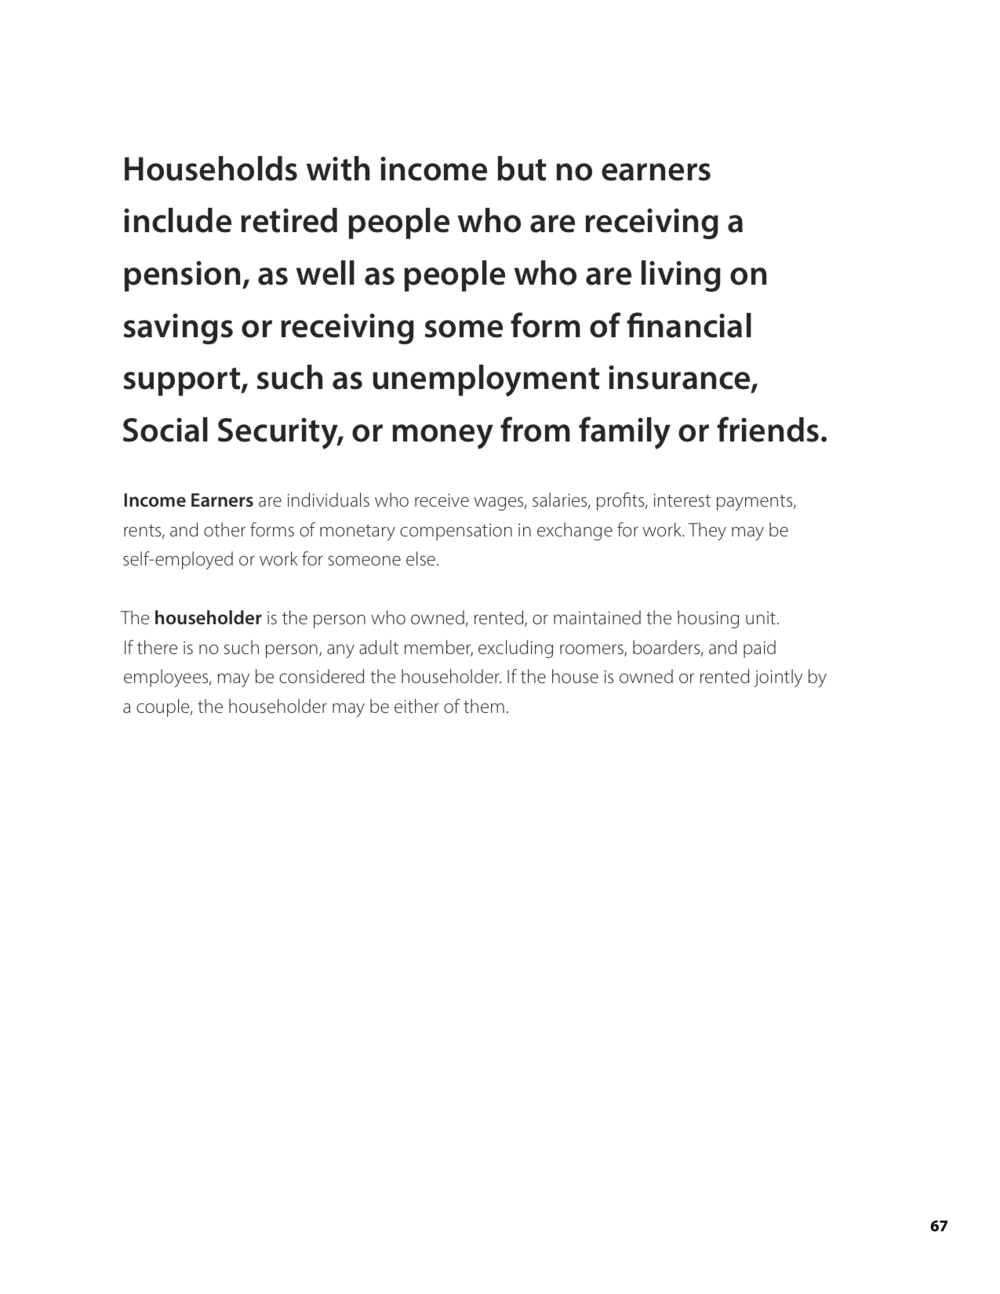 IncomeGuide_2013_Jan17_RGB_page 67_67.png